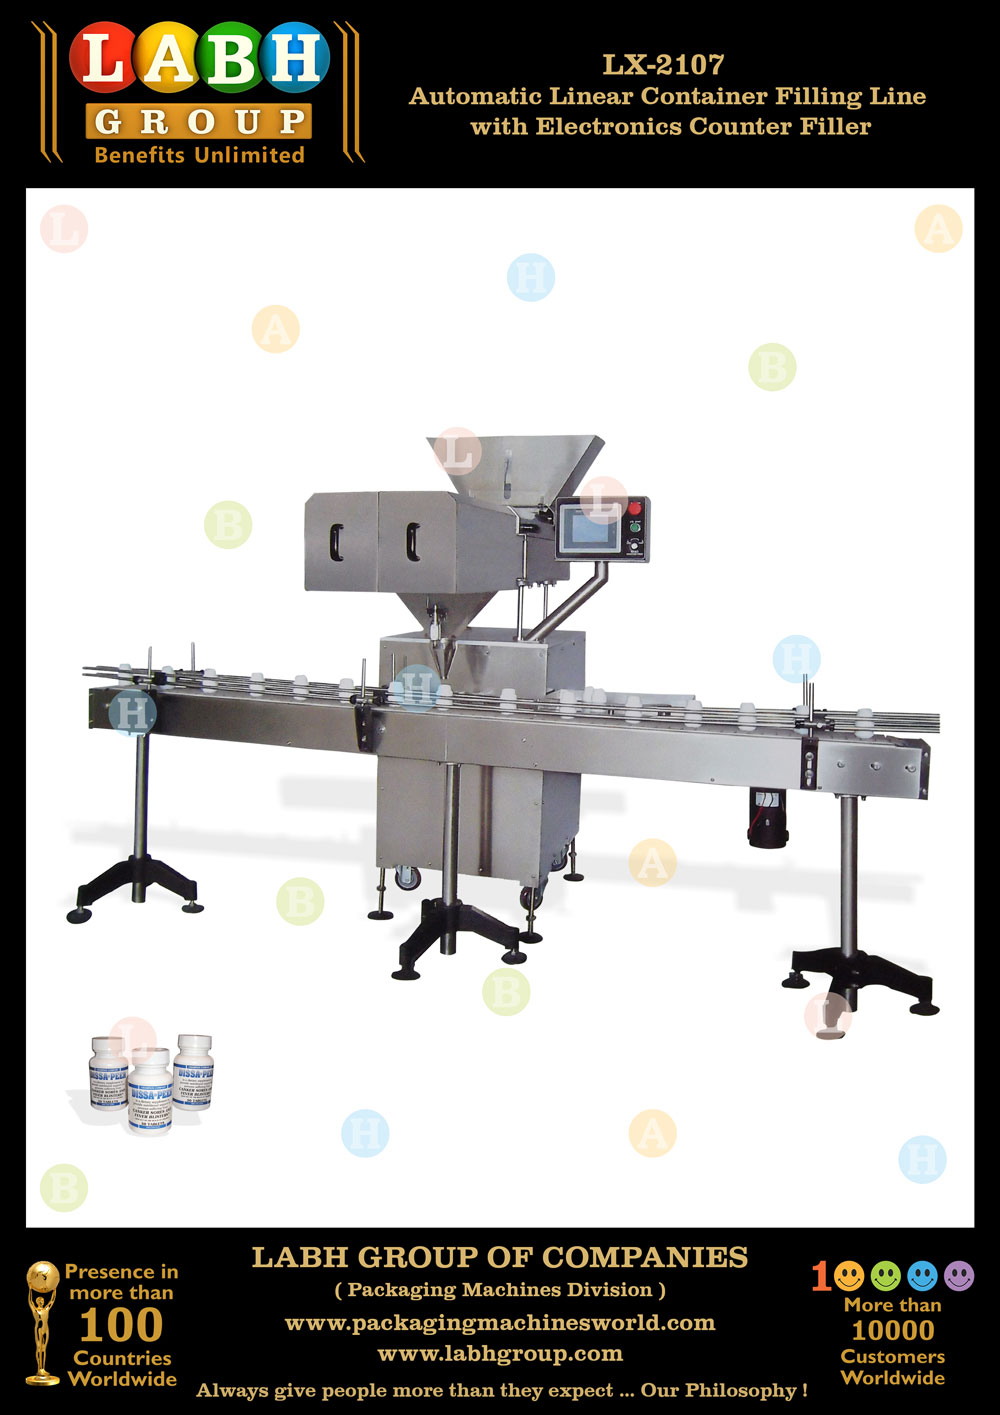 Automatic Linear Container Filling Line with Electronics Counter Filler